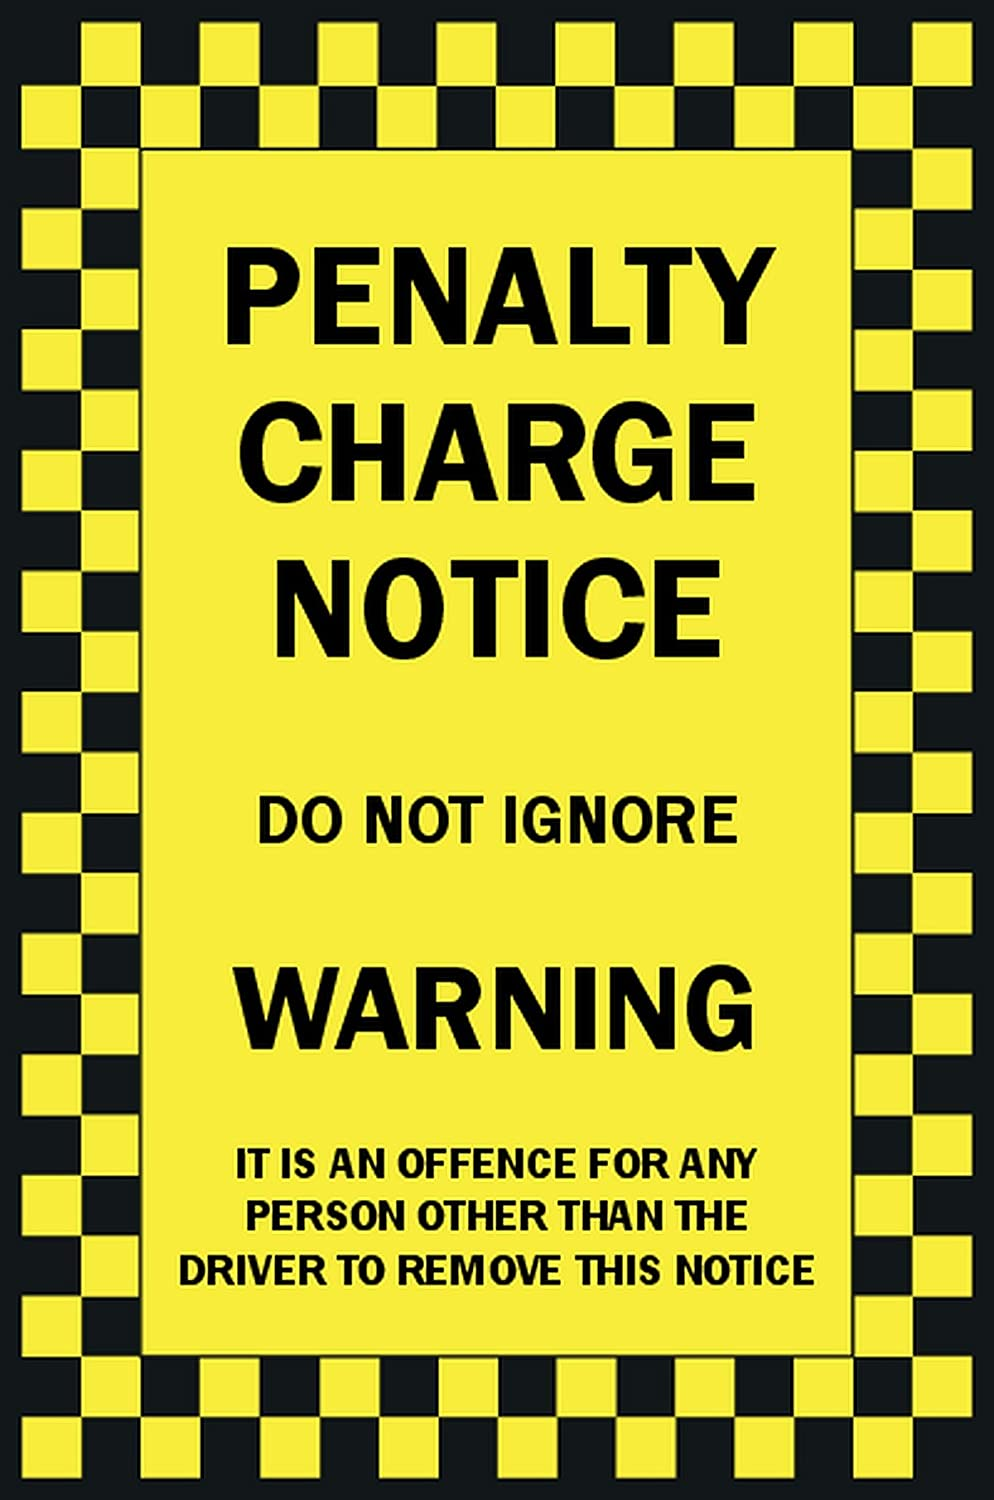 picture regarding Printable Fake Parking Tickets named Funking Bringing A Smile In direction of Your Experience 10 x Prank Parking Tickets. Pack Of 10 Untrue Joke Prank Parking Tickets.